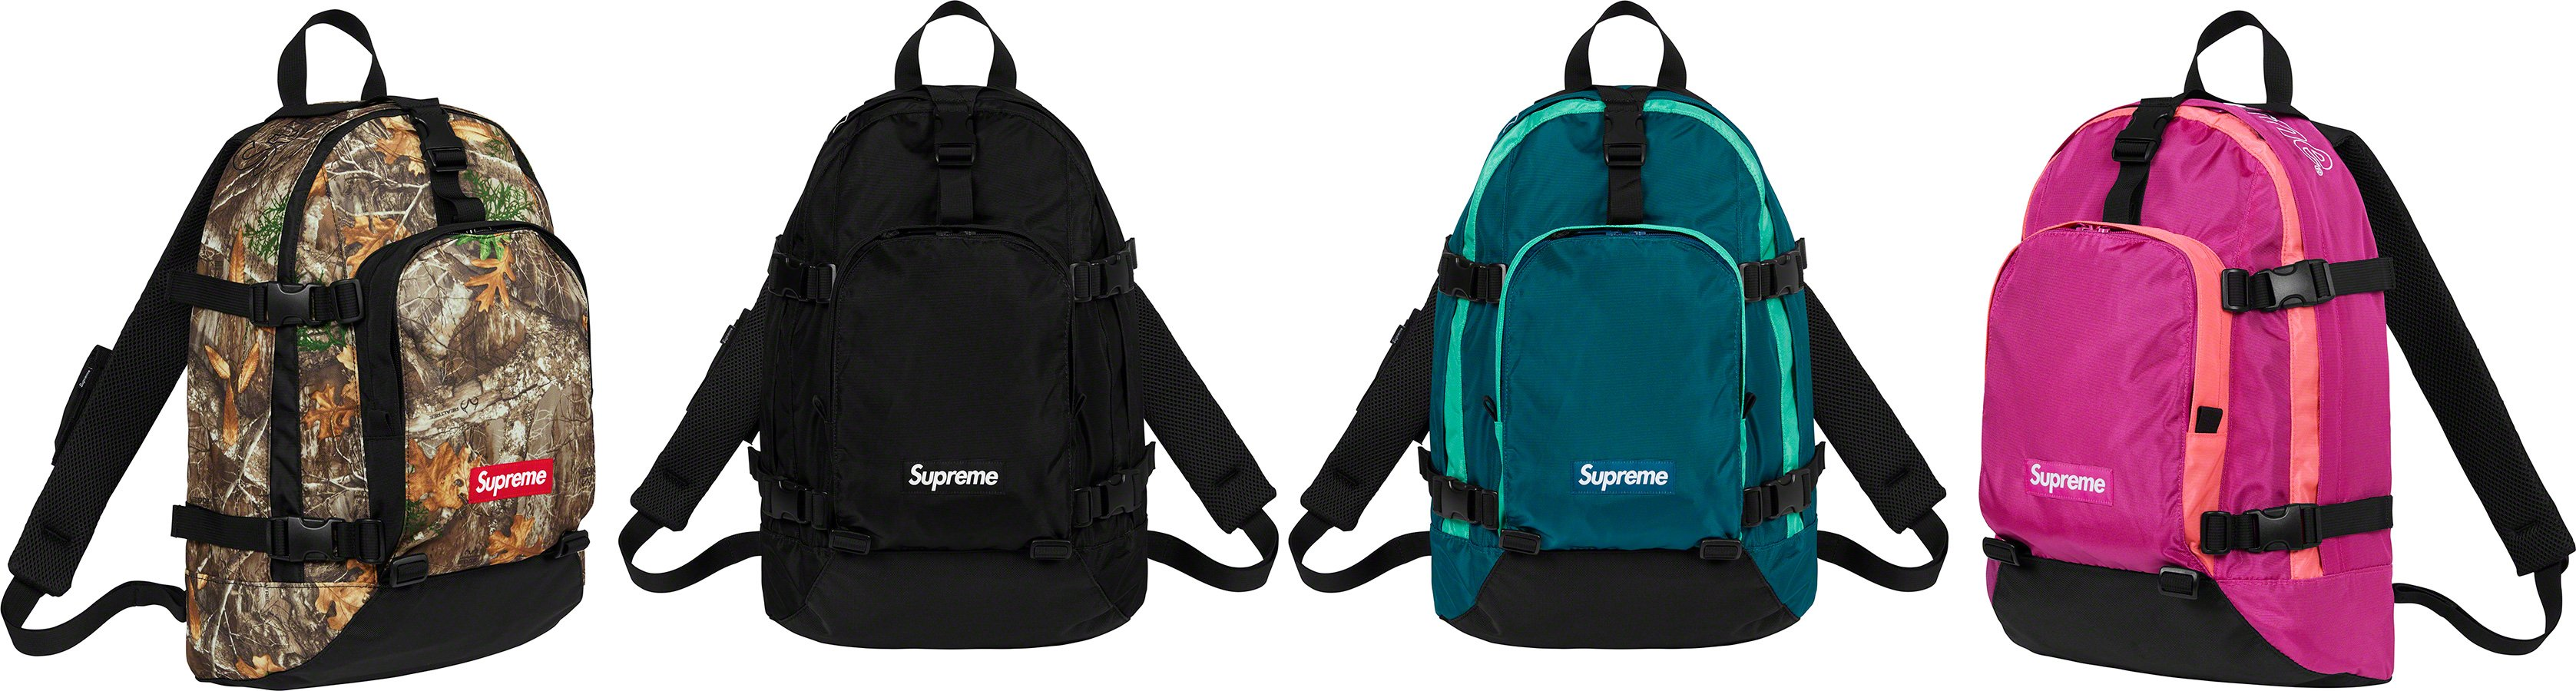 supreme-19aw-19fw-fall-winter-backpack